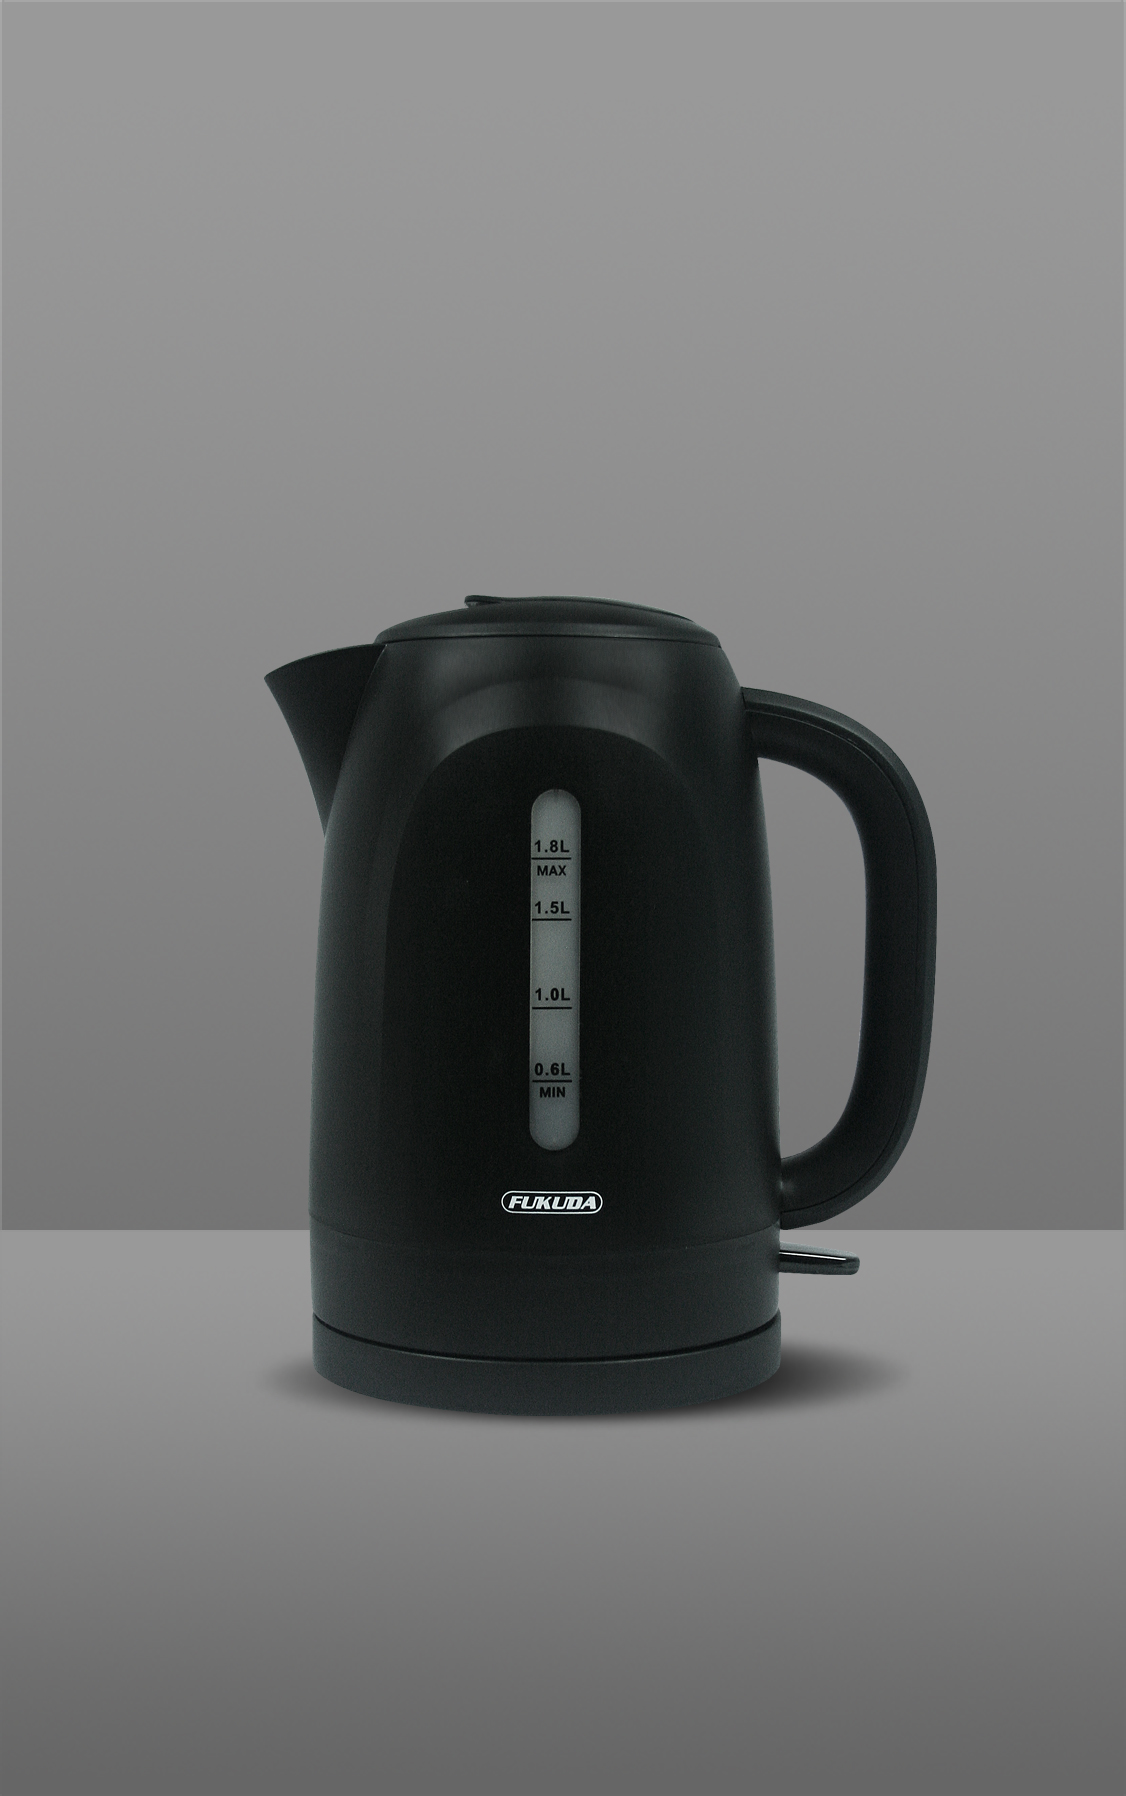 1.8L MATTE ELECTRIC KETTLE 360° ROTARY